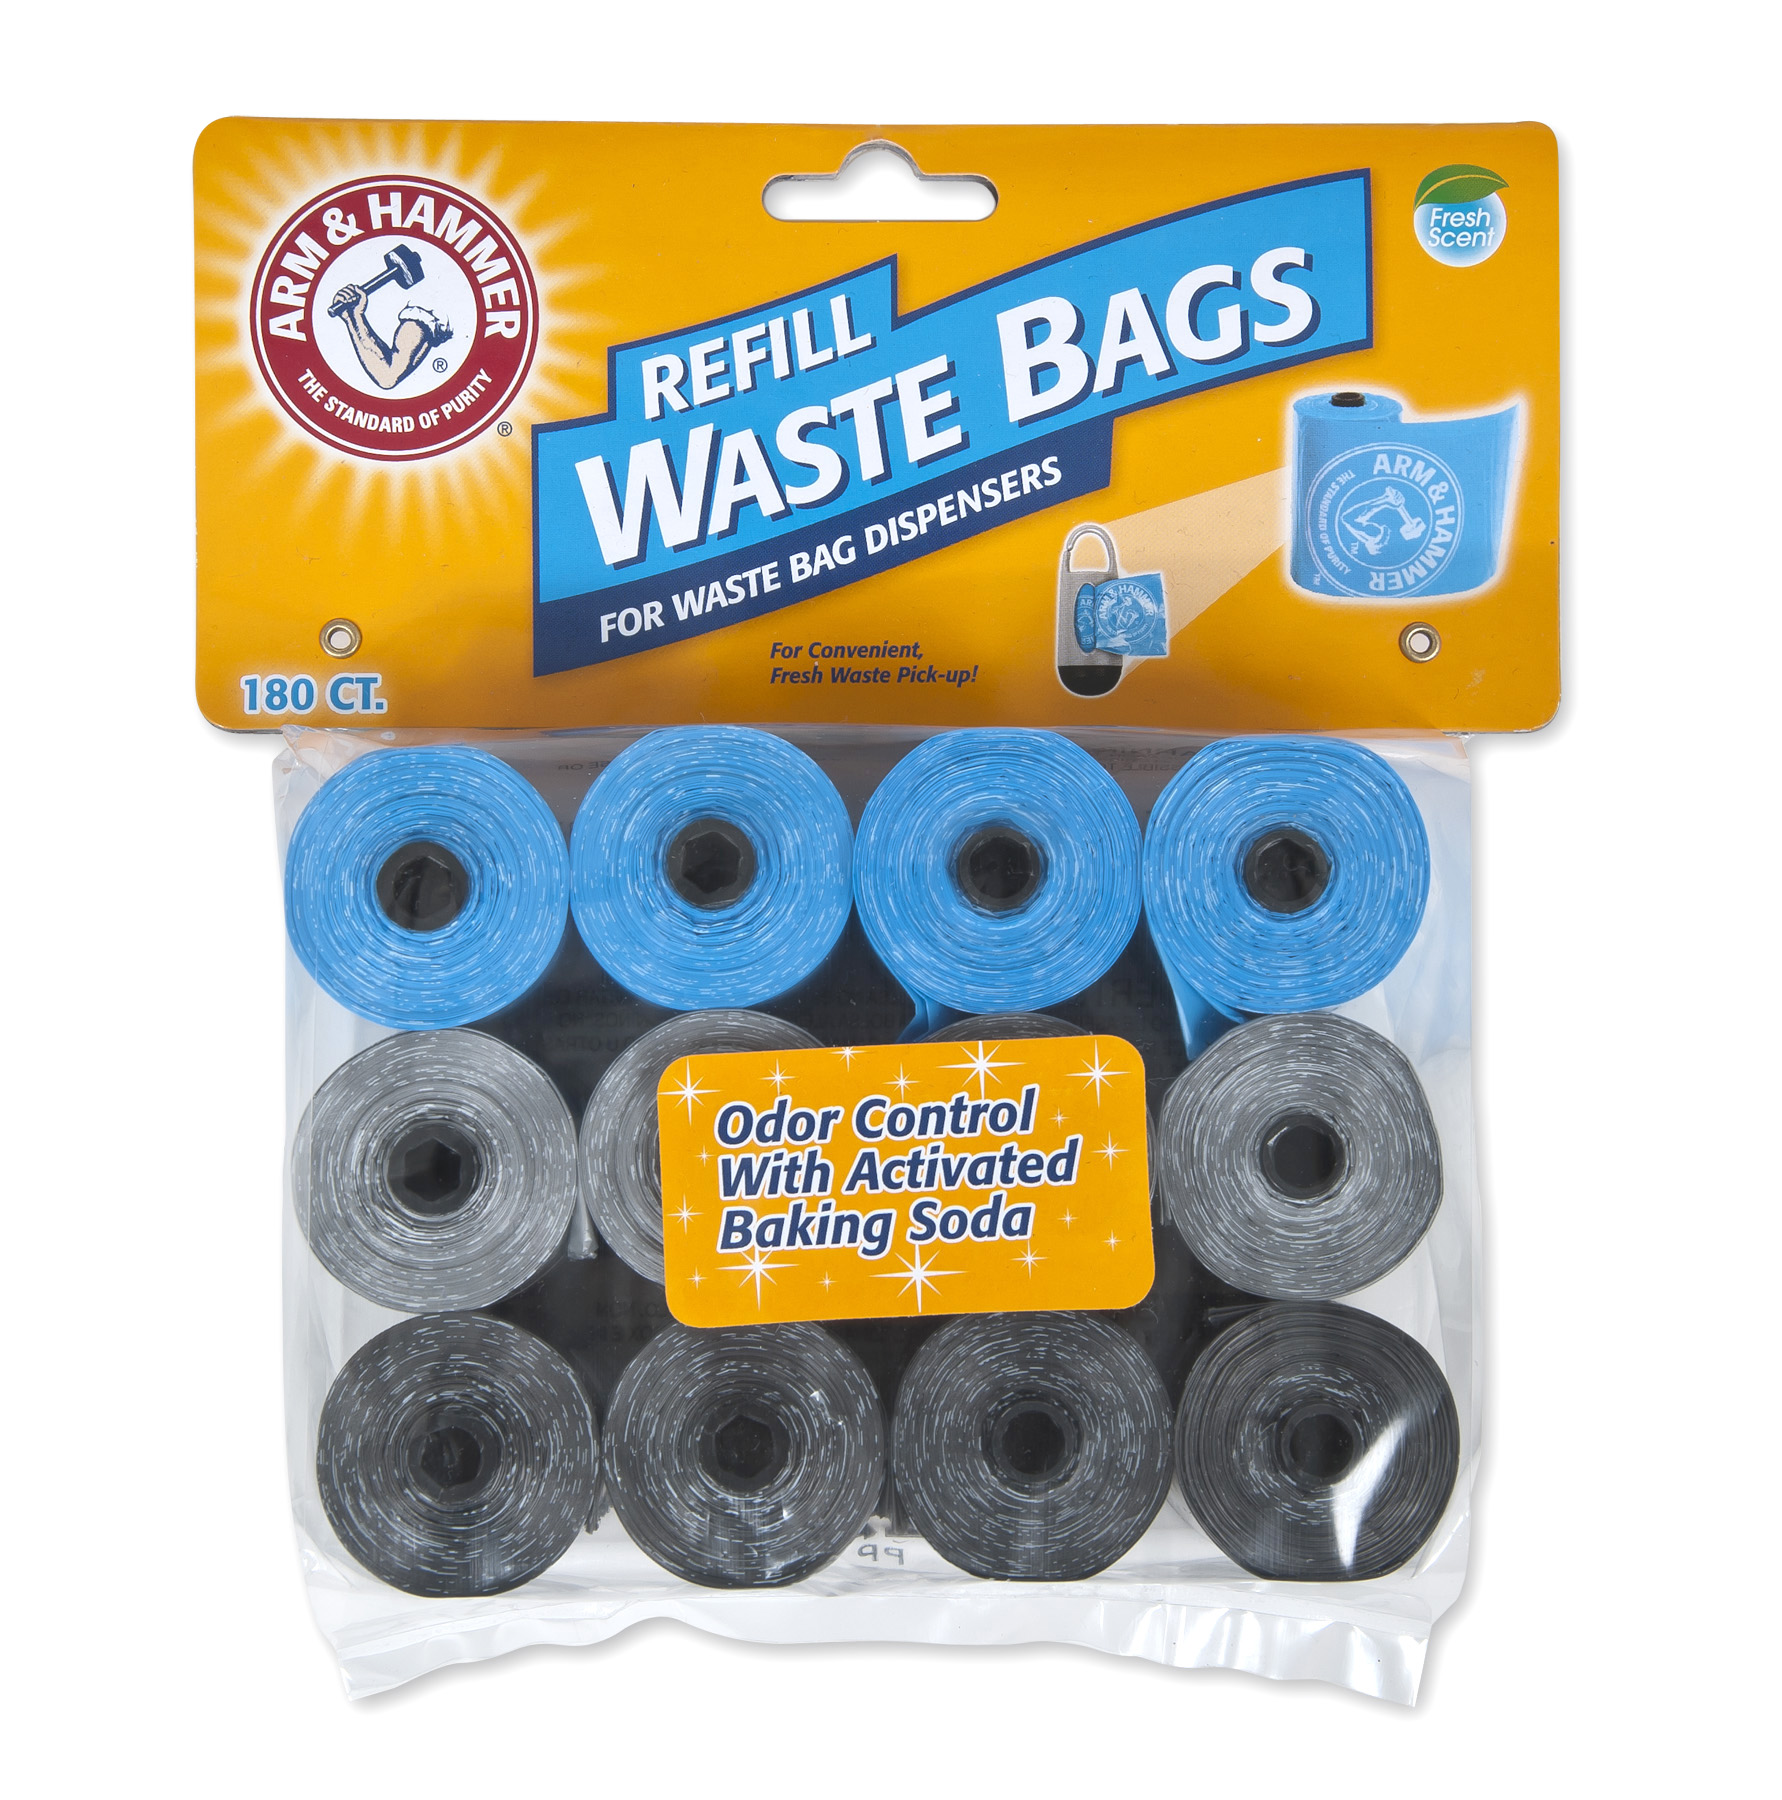 Arm & Hammer Disposable Waste Bag Refills Assorted Colors (Blue, Silver, Black) 180 Count